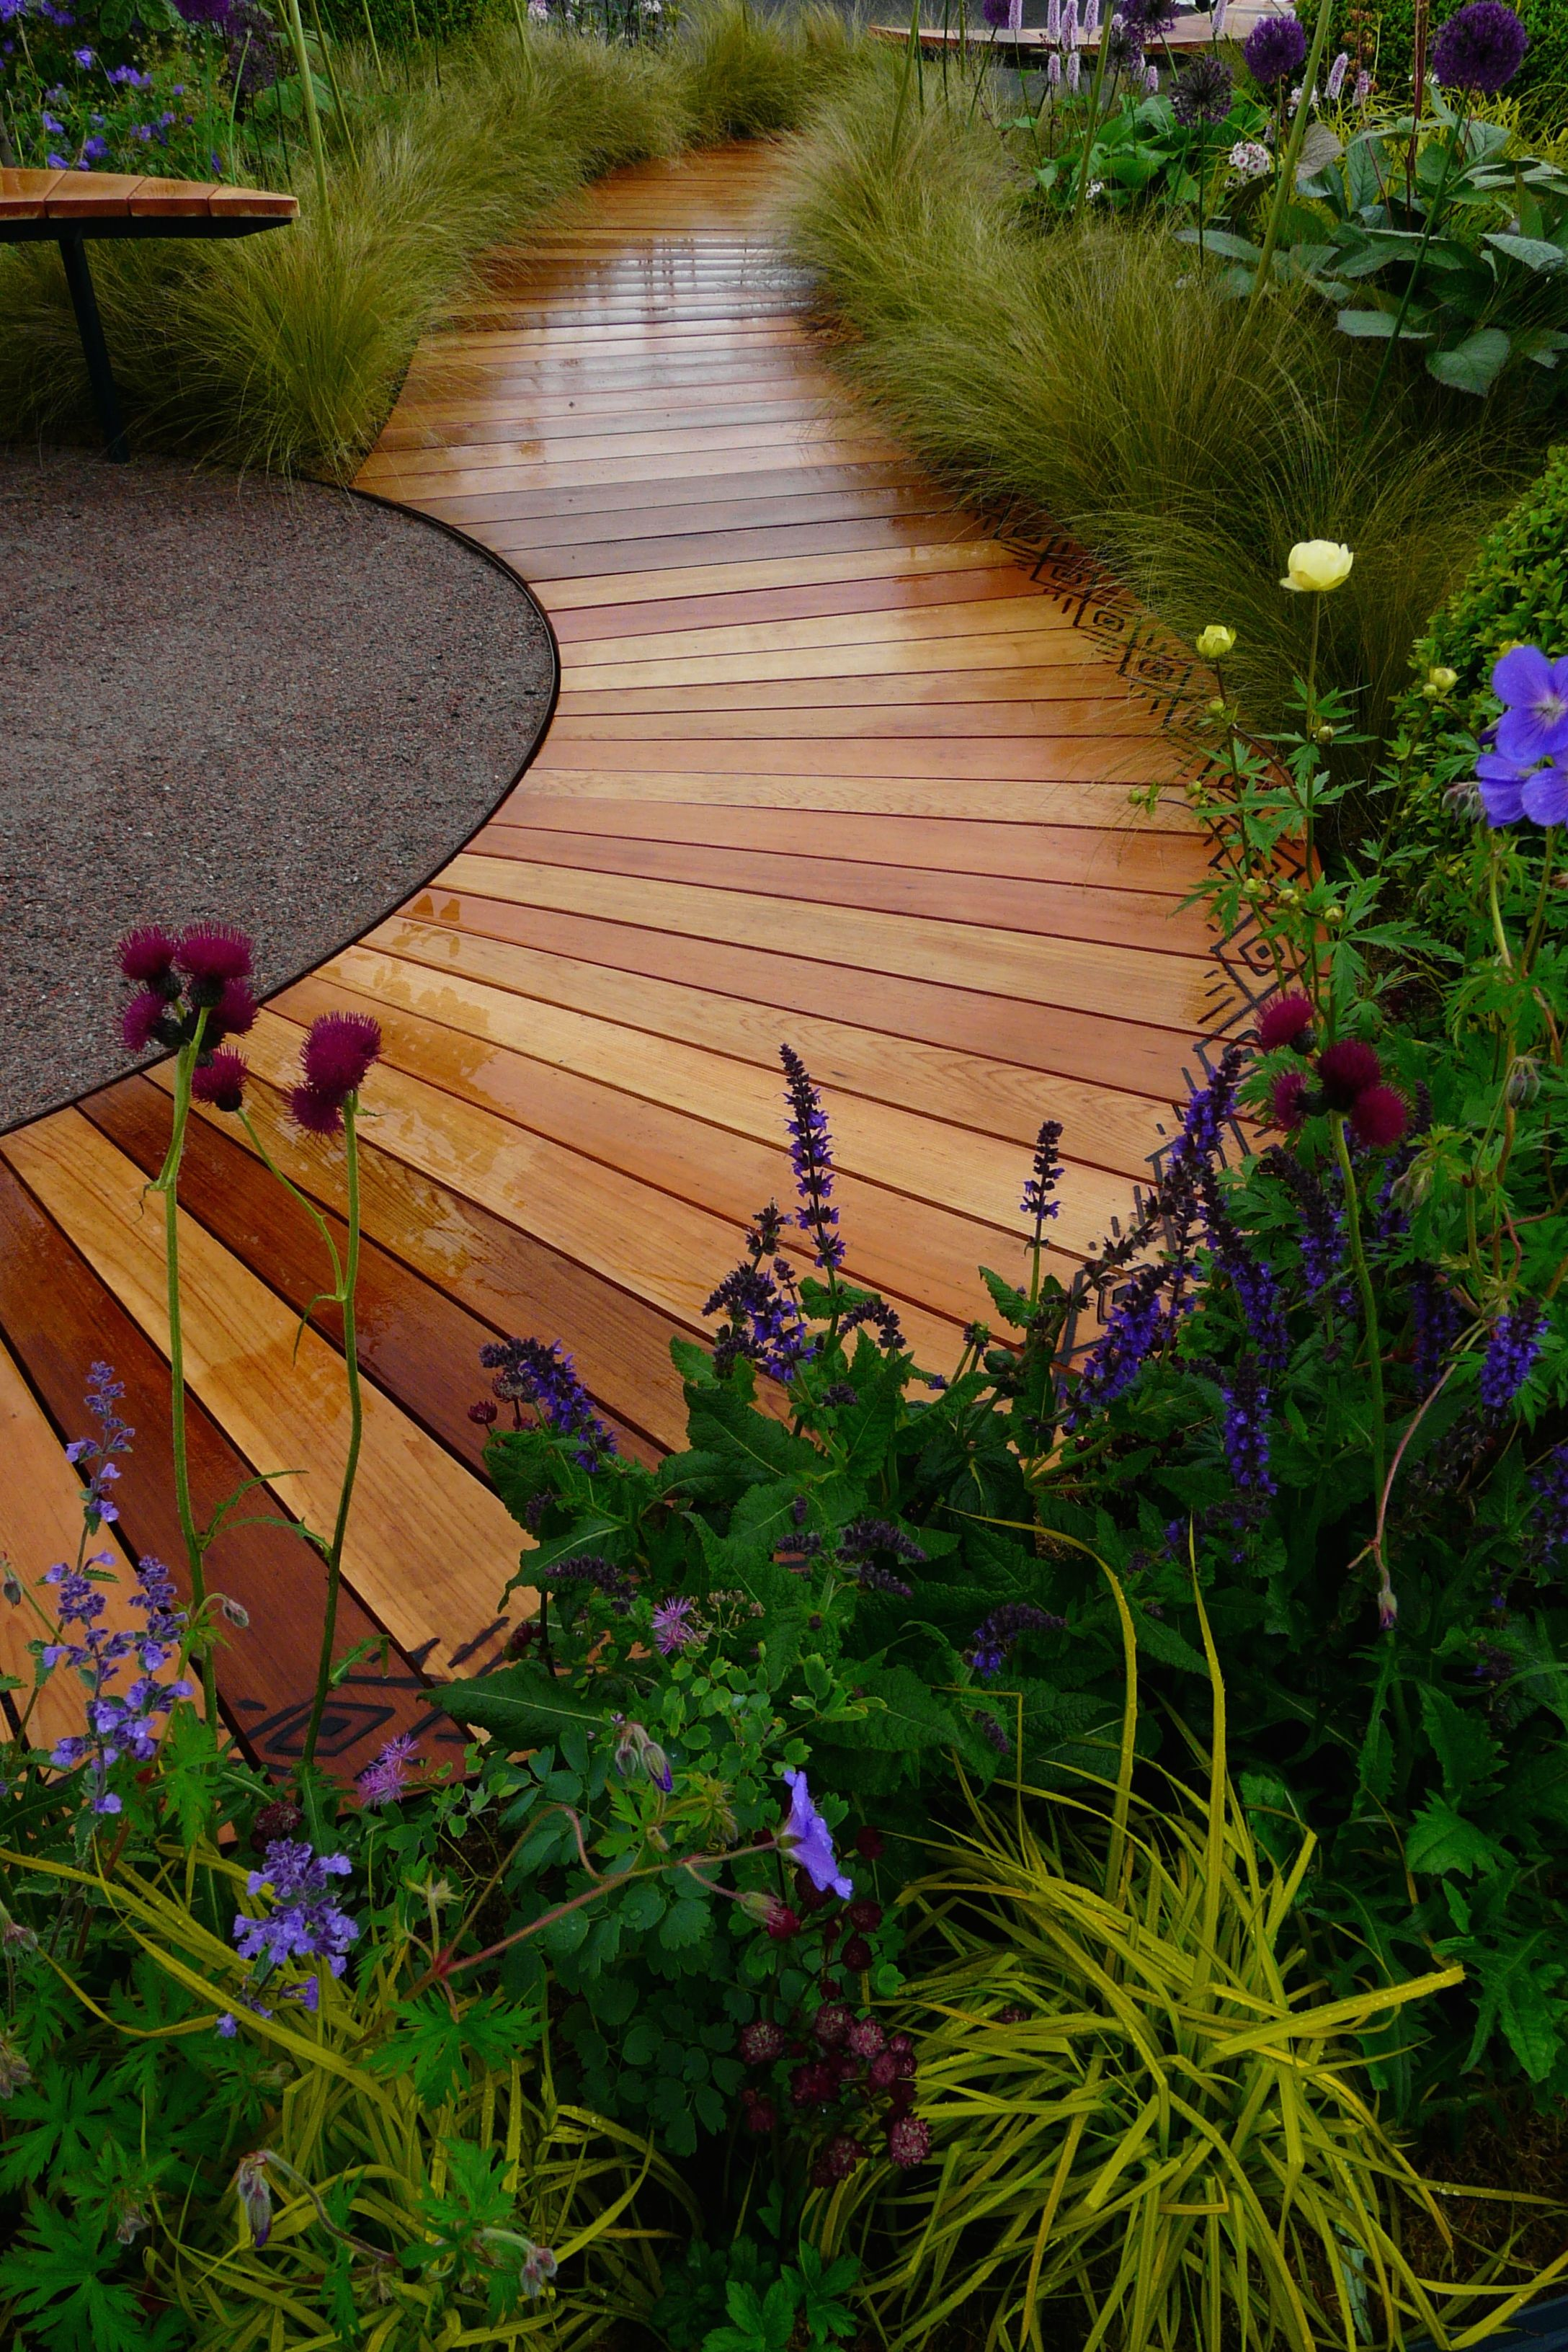 Designed by Carolyn Grohmann. Curving cedar boardwalk with scorched ...